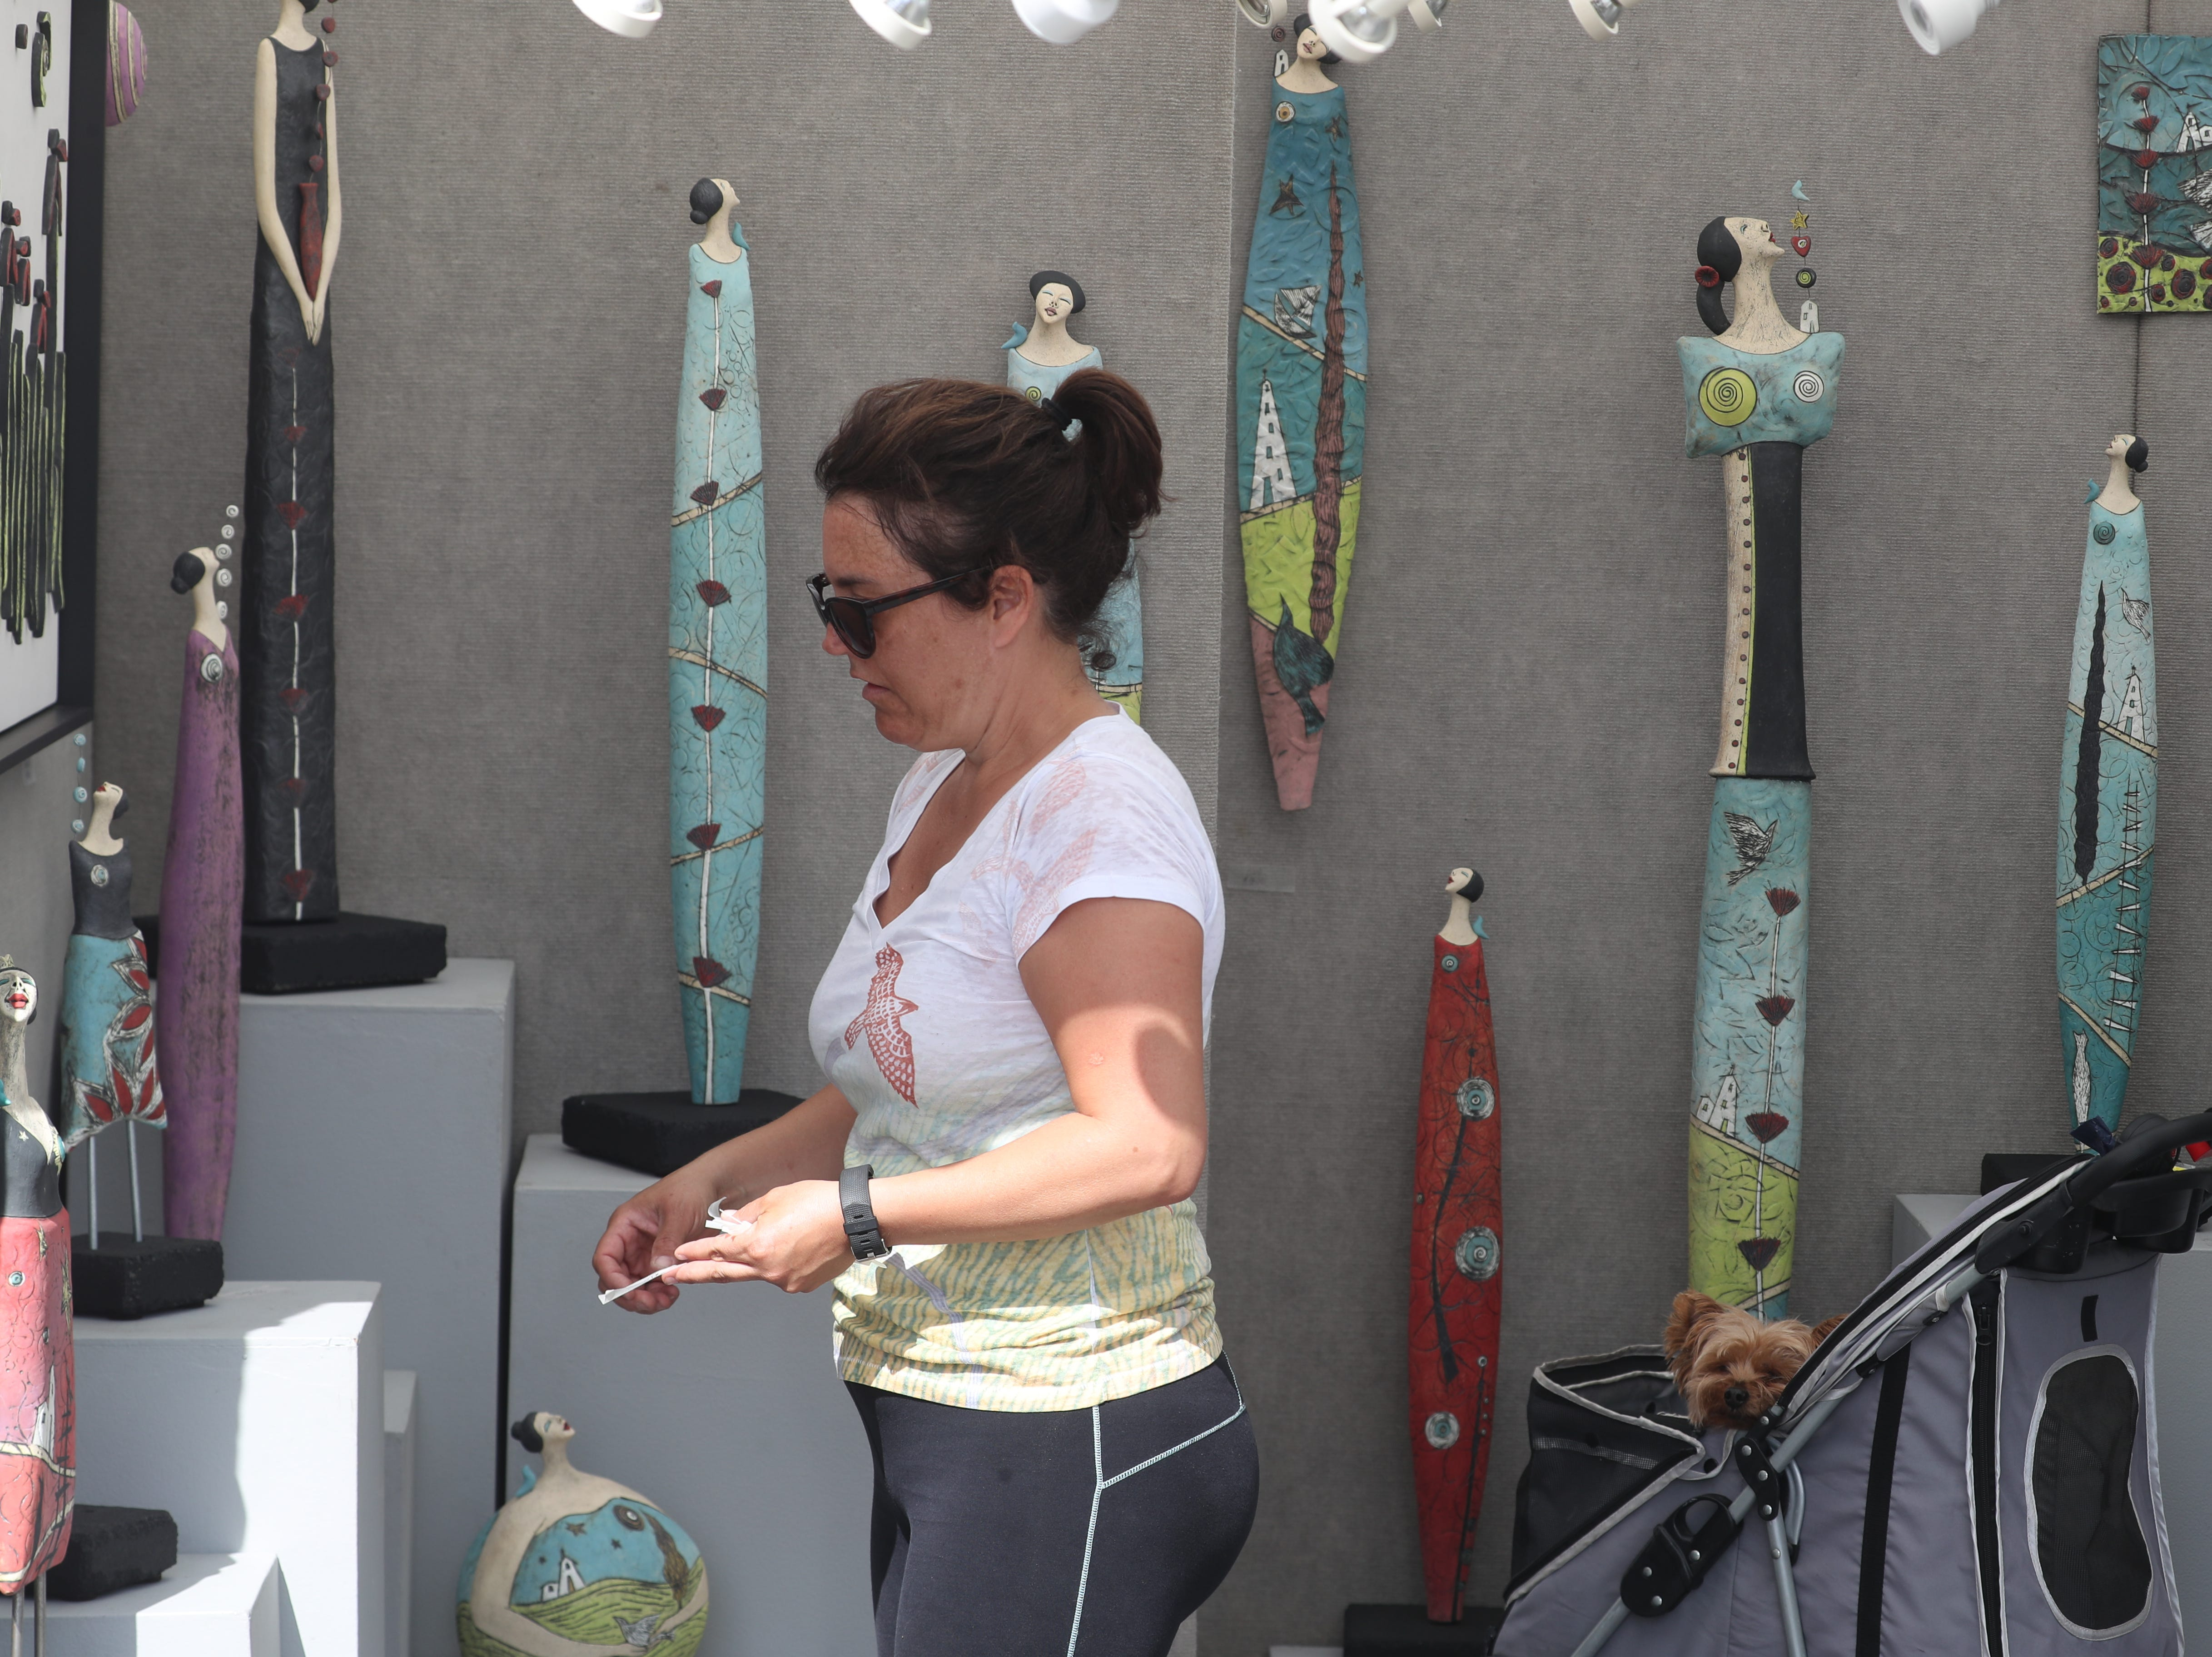 Artists spent the morning setting up for ArtFest Fort Myers downtown on Edwards Drive. The festival goes all weekend.